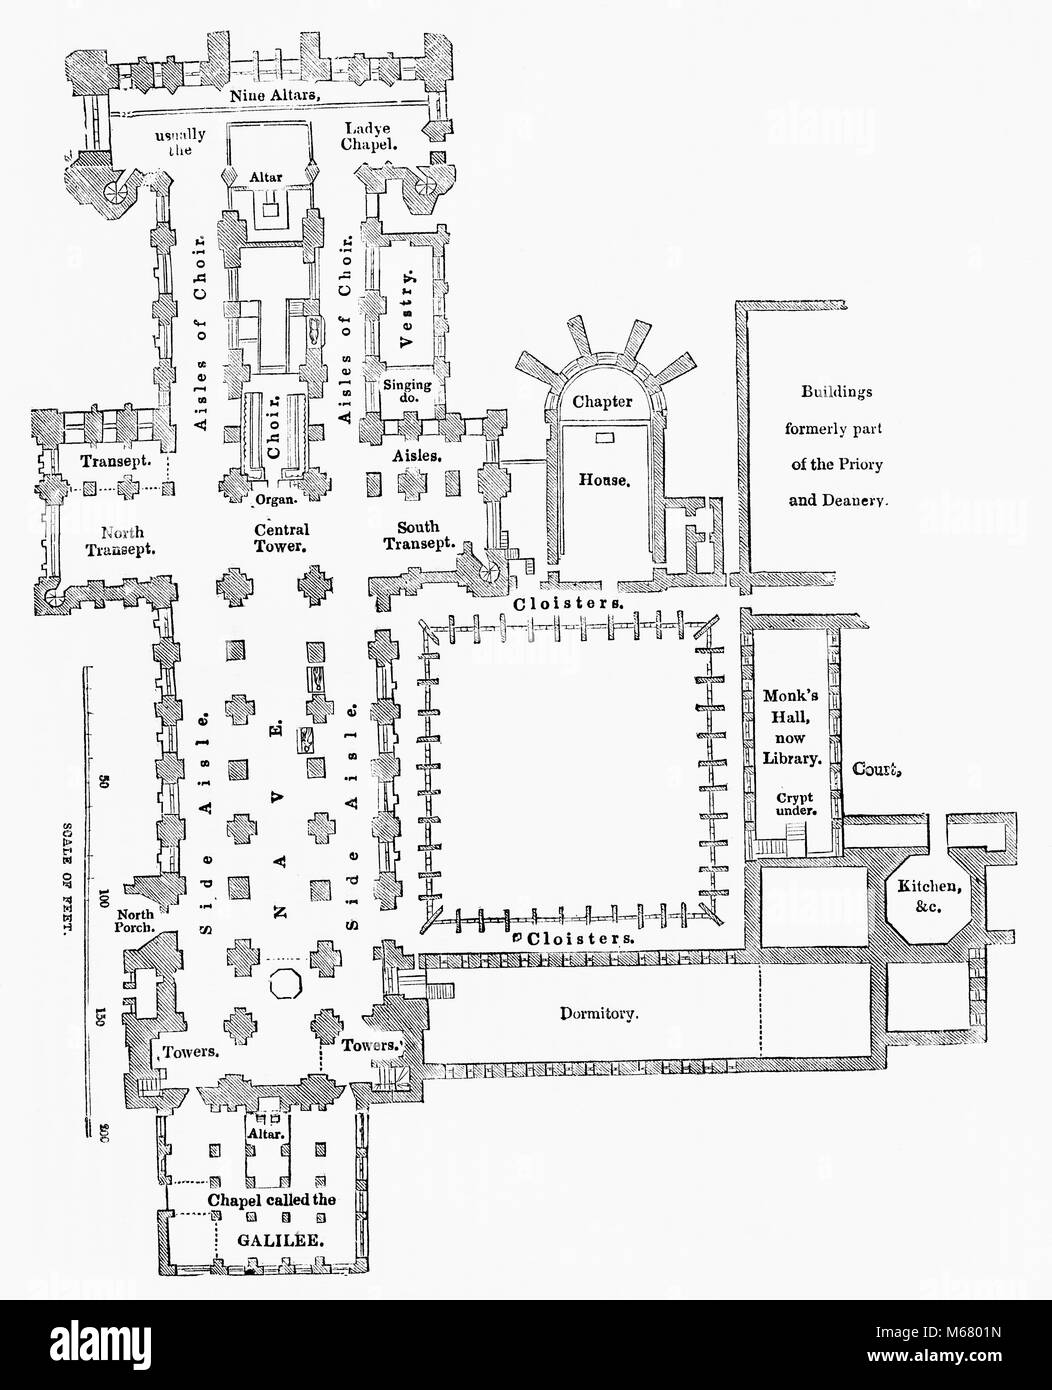 Floor Plan Of Durham Cathedral Durham England From Old England A Pictorial Museum Published 1847 Stock Photo Alamy